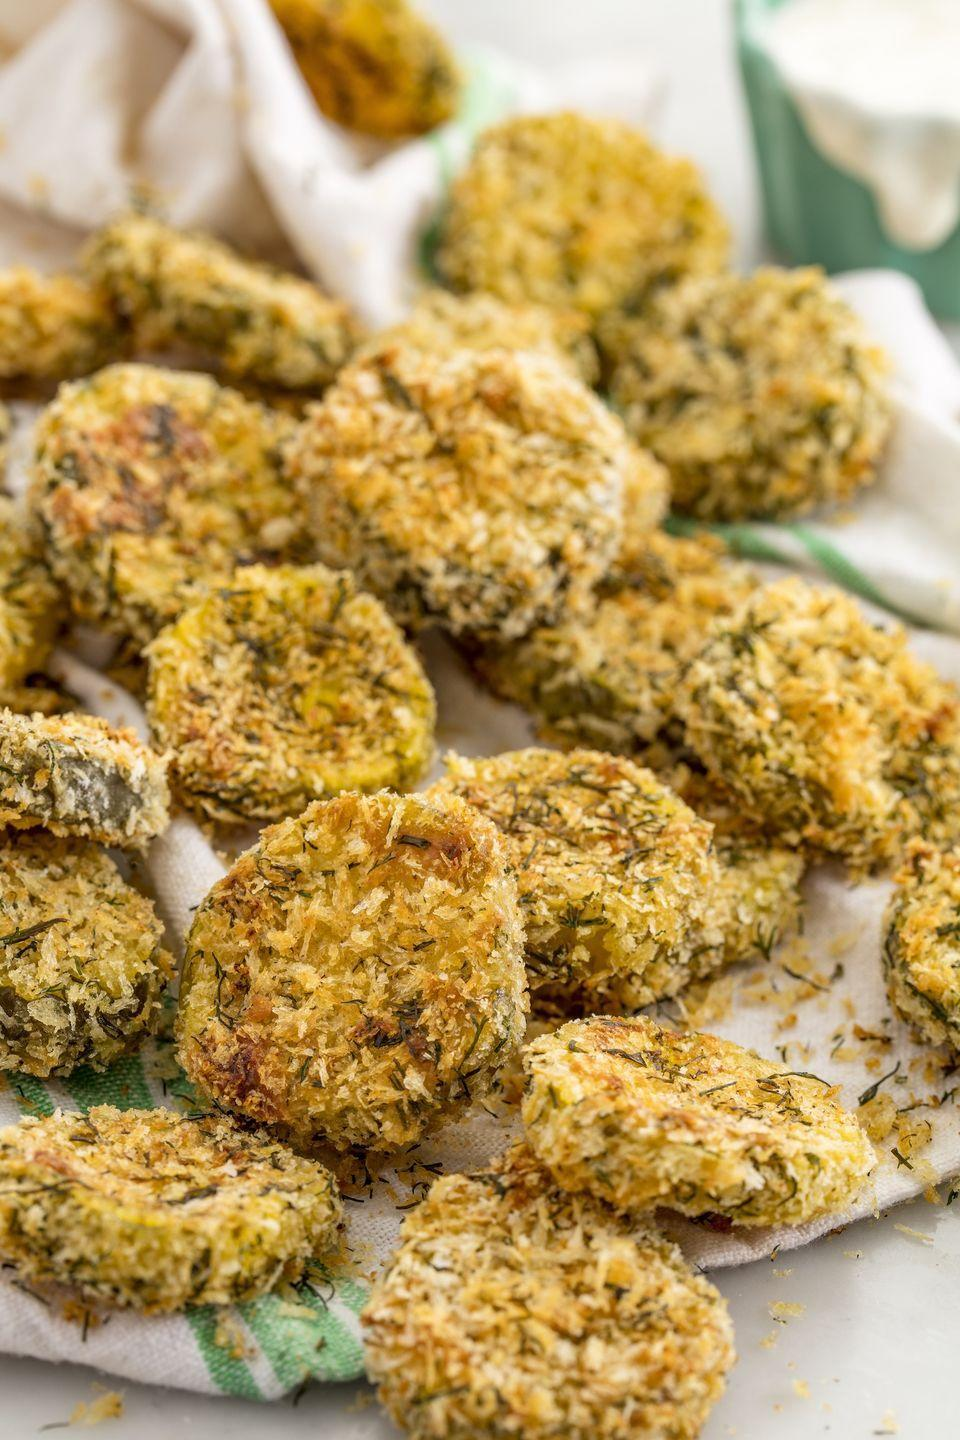 """<p>The healthier way to do fried pickles!</p><p>Get the recipe from <a href=""""https://www.delish.com/cooking/recipe-ideas/recipes/a53332/oven-fried-pickles-recipe/"""" rel=""""nofollow noopener"""" target=""""_blank"""" data-ylk=""""slk:Delish"""" class=""""link rapid-noclick-resp"""">Delish</a>. </p>"""